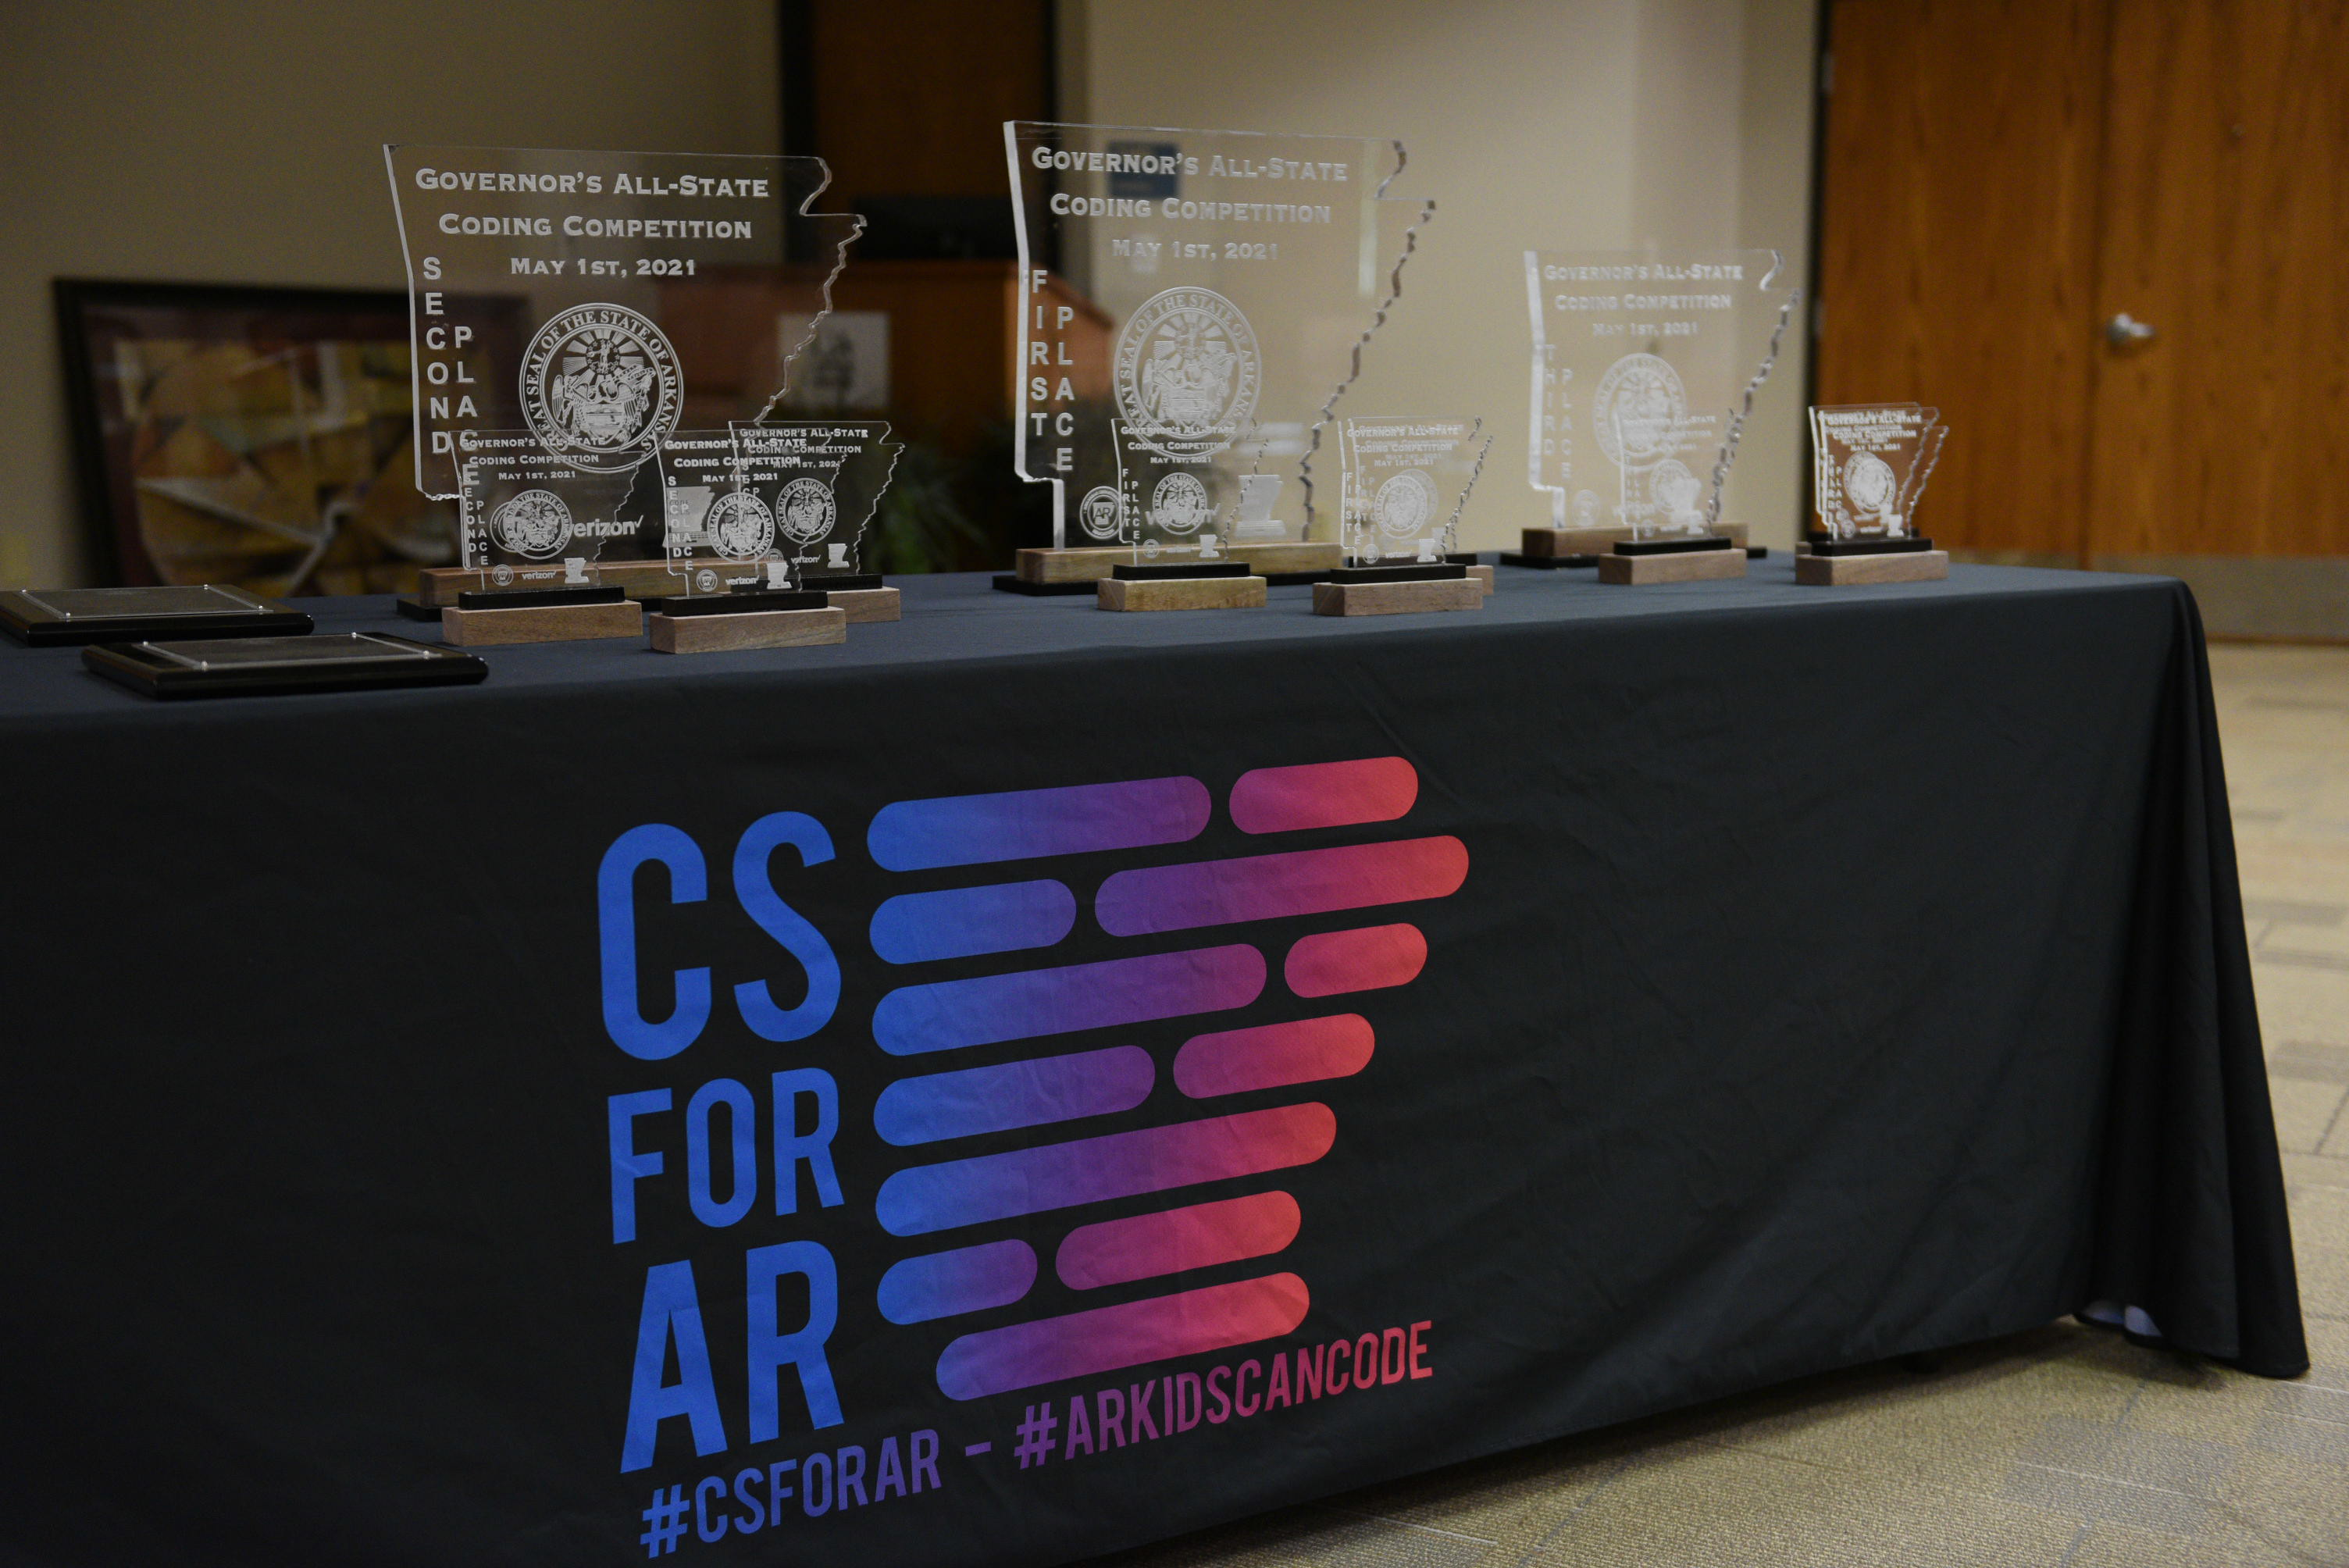 All-State Coding Competition May 2021